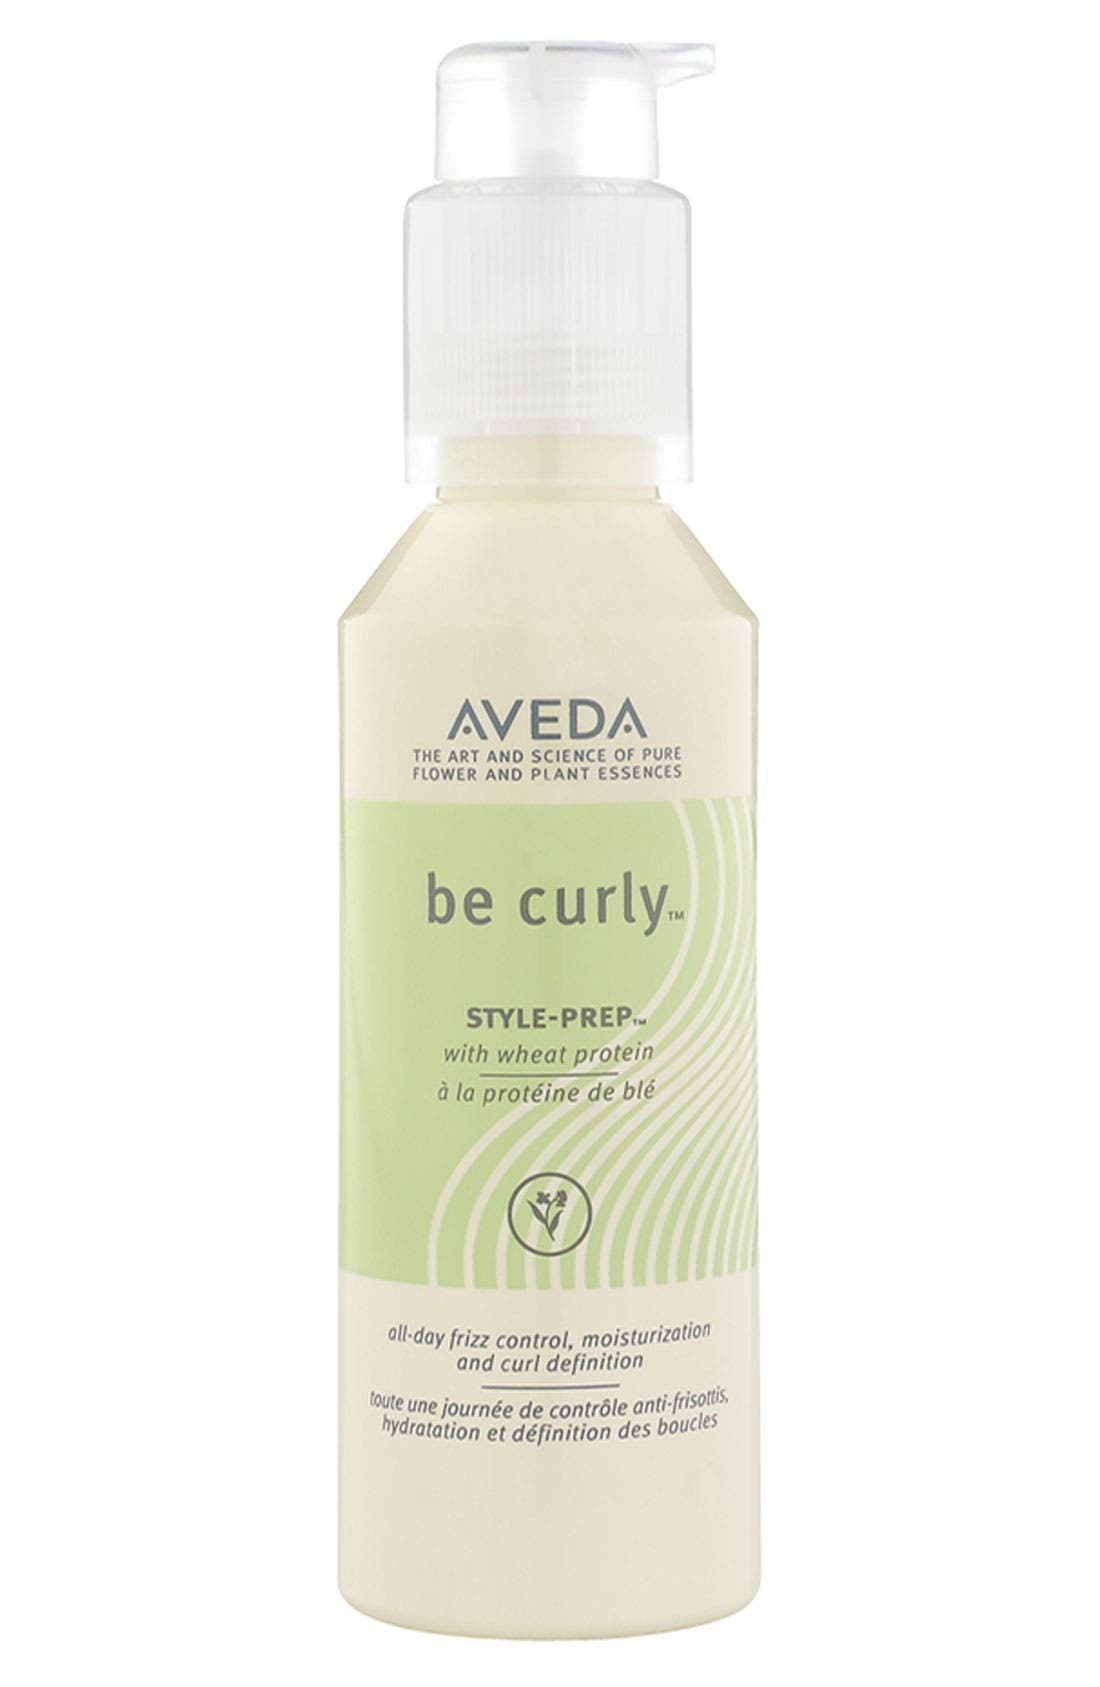 AVEDA, be curly<sup>™</sup> style-prep<sup>™</sup>, Alternate thumbnail 4, color, NO COLOR